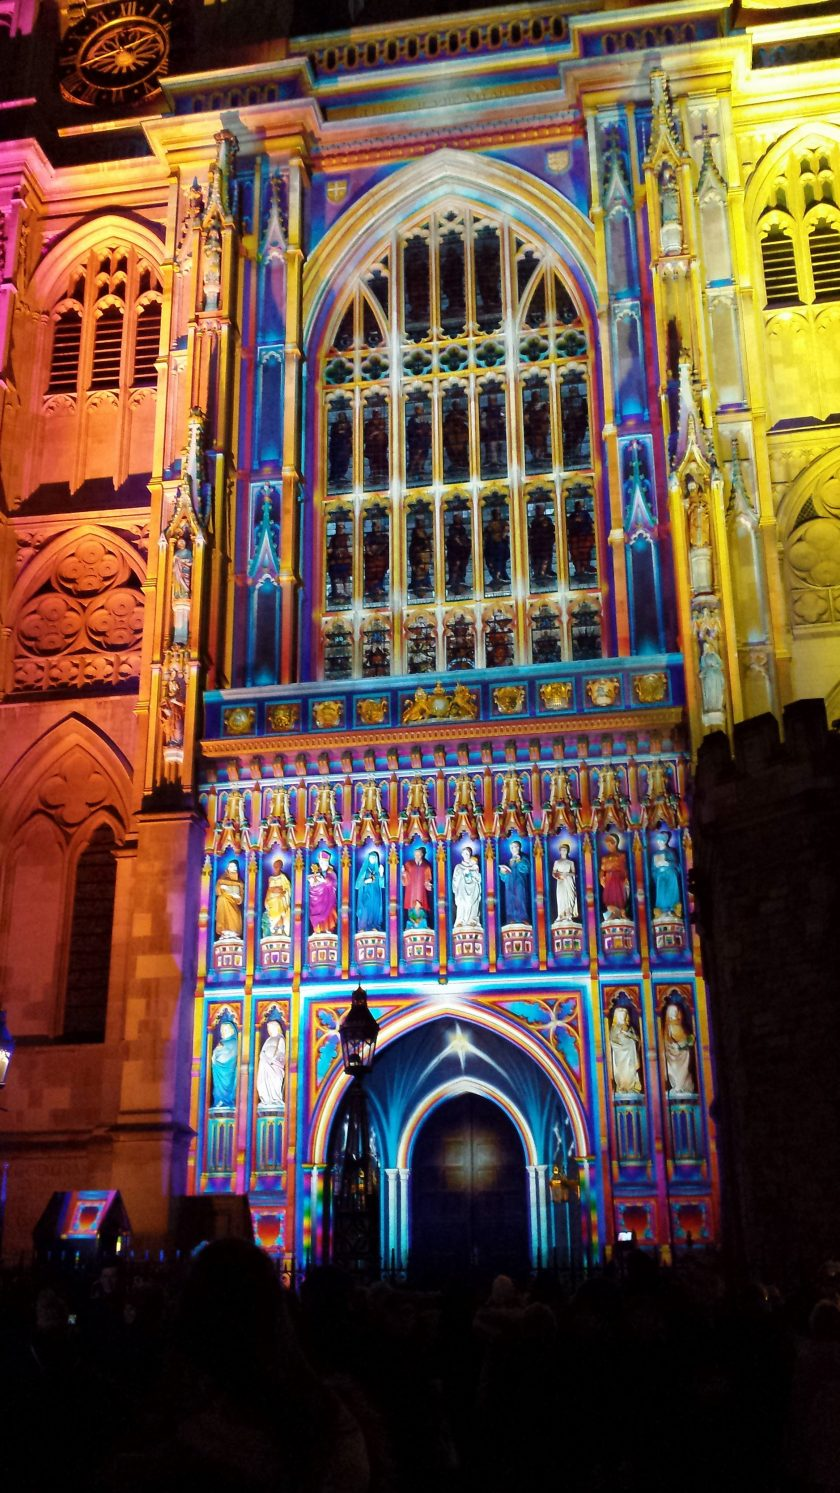 WESTMINSTER ABBEY WEST END LIT BY A GIANT OVERHEAD PROJECTOR